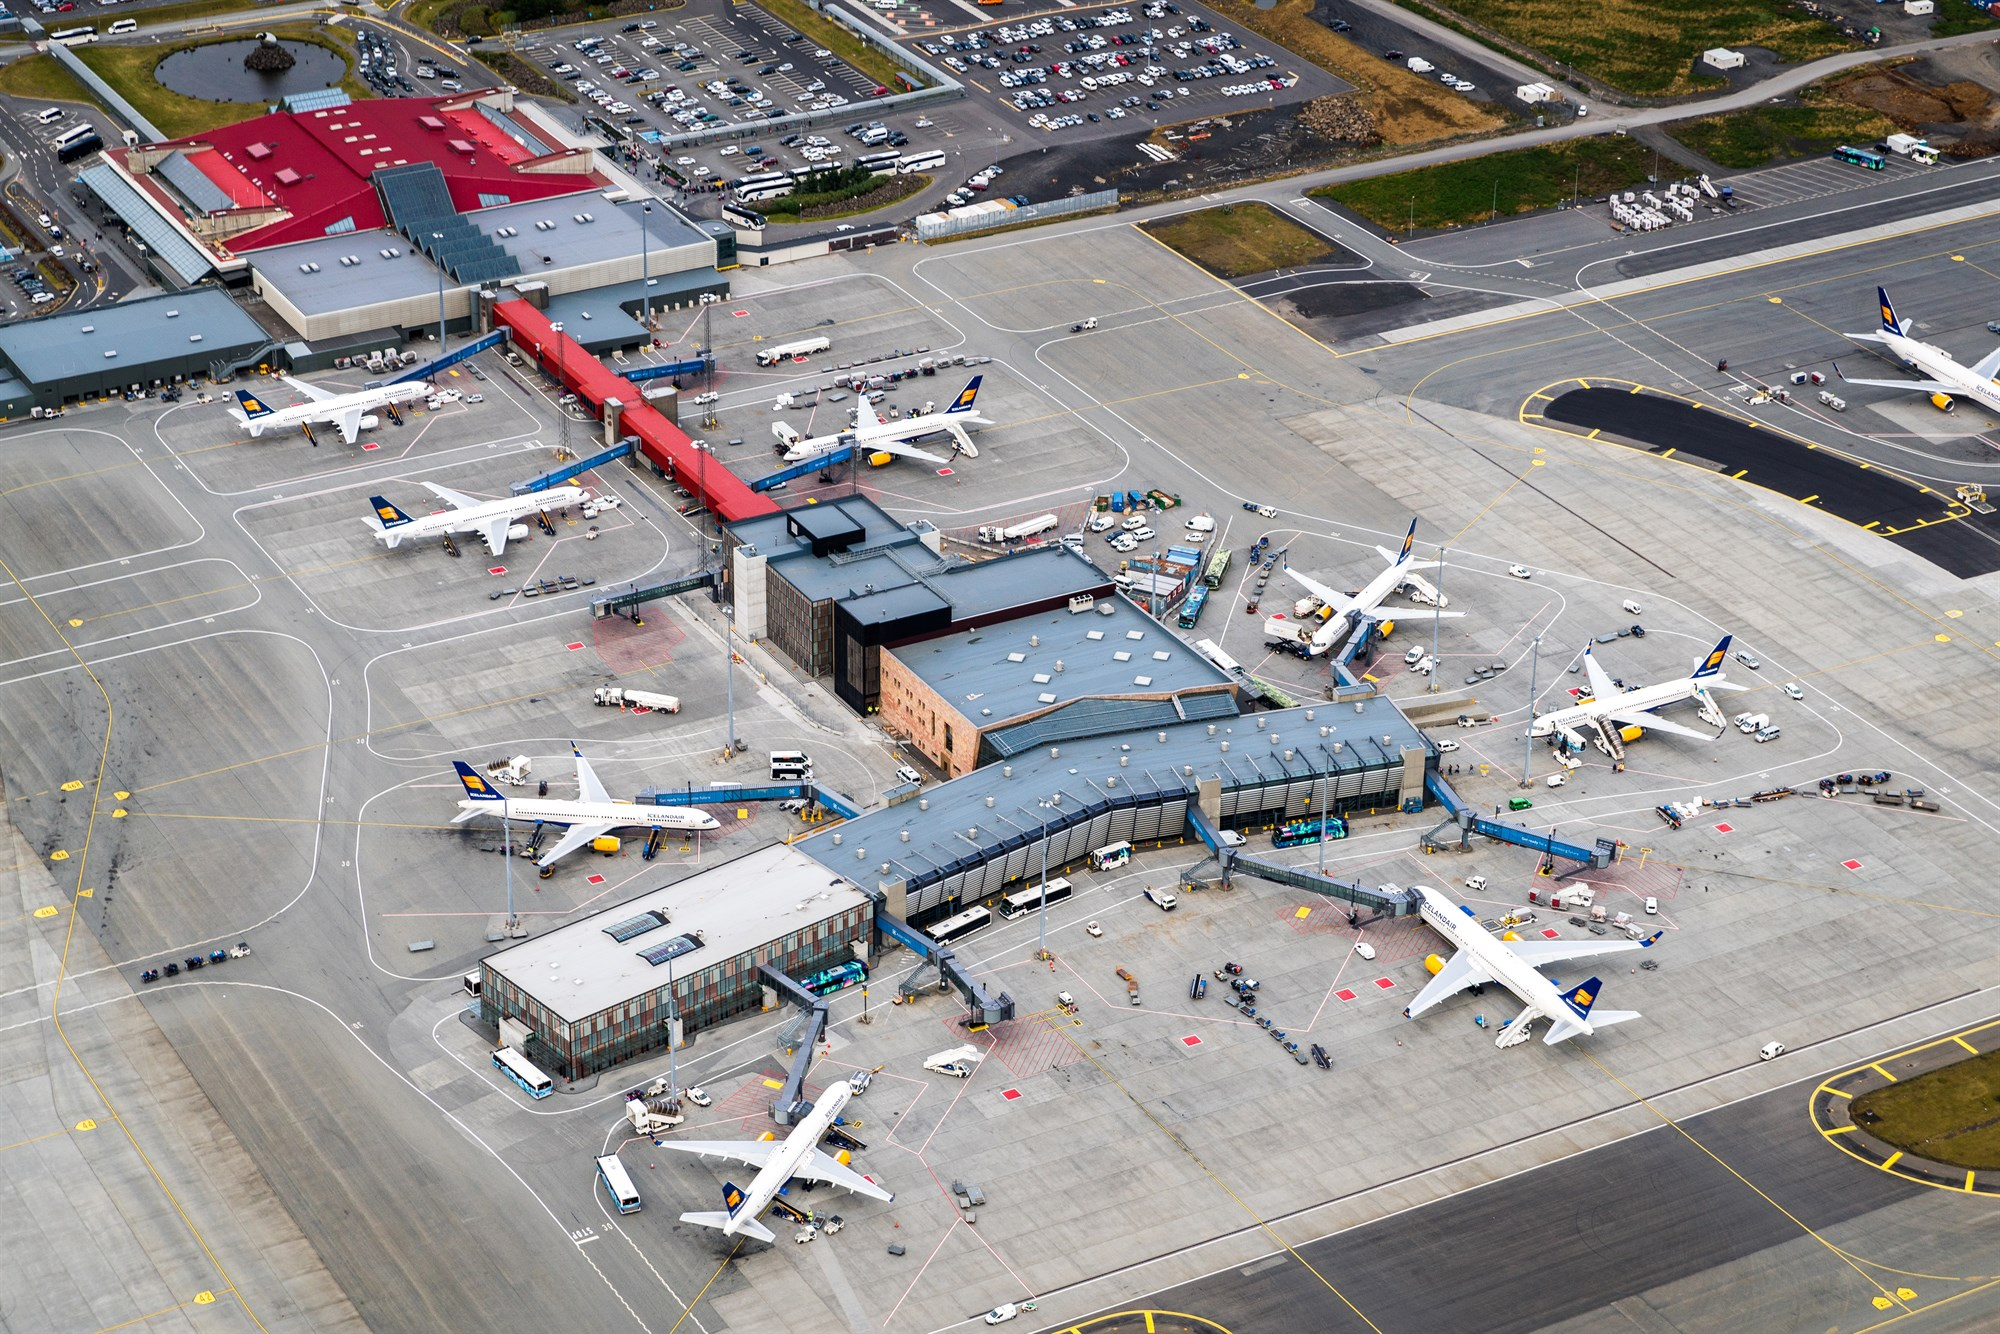 Keflavik Airport passenger forecast for 2020